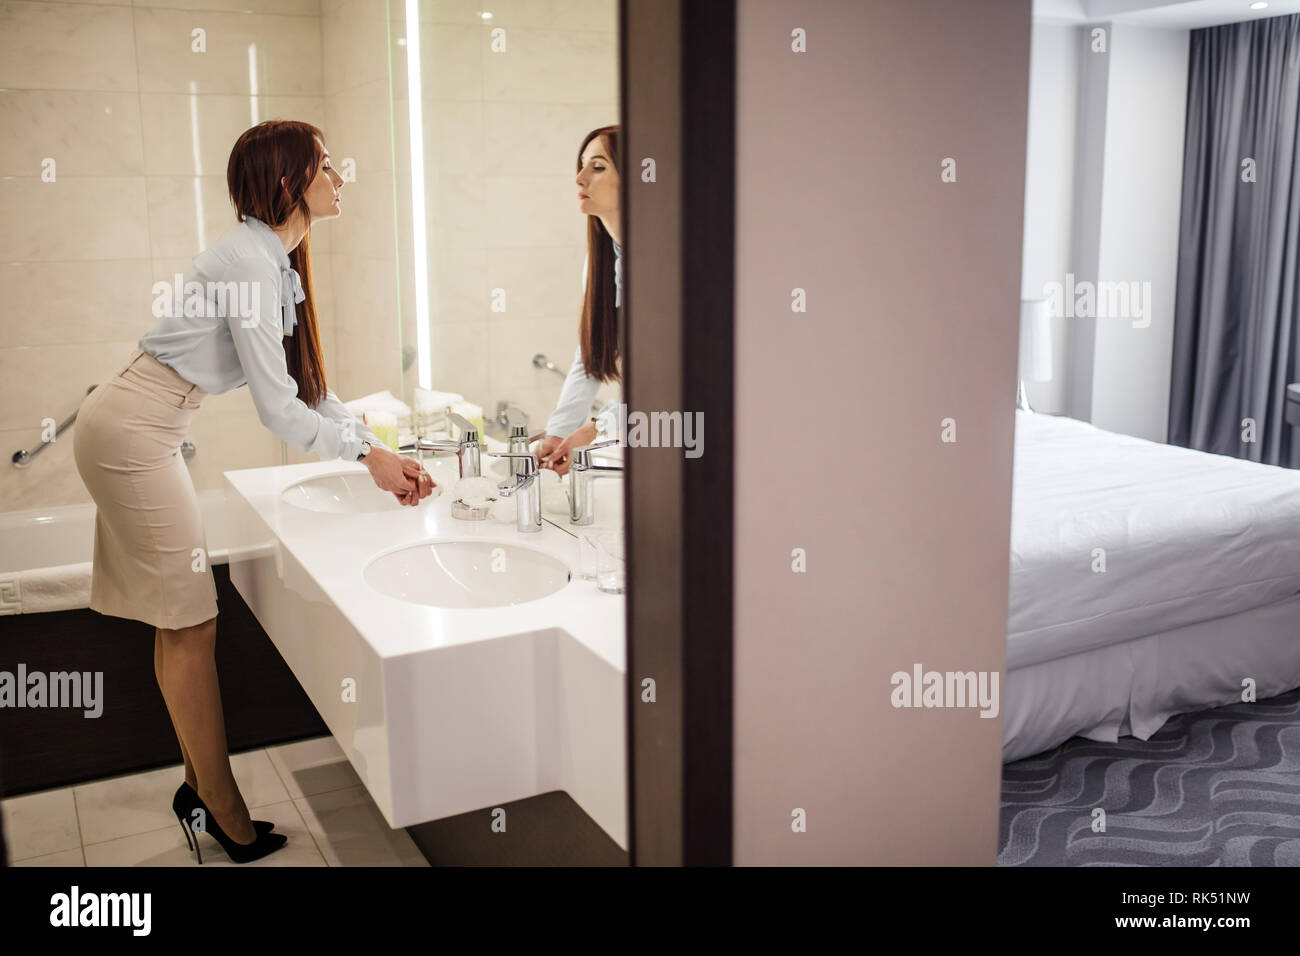 Business lady in dressed in button-down shirt, pencil skirt and stilettos, looking at her reflection in the mirror while washing hands in the bathroom - Stock Image